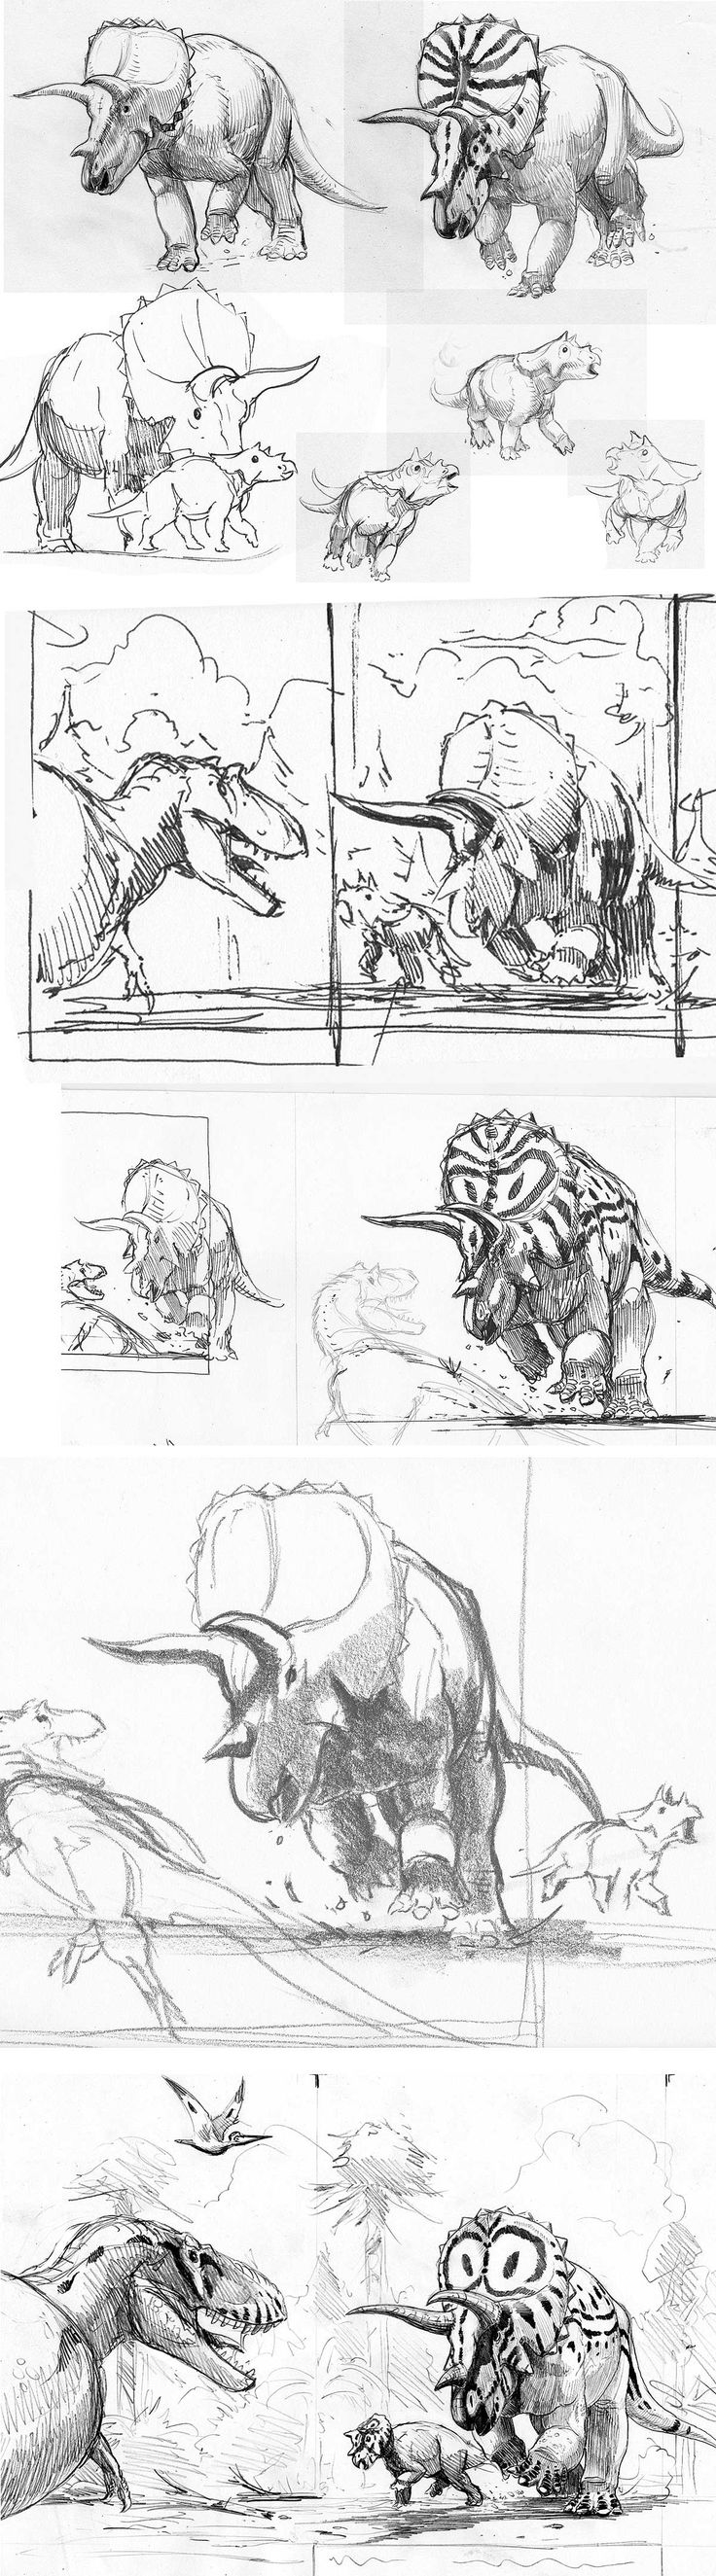 Triceratops studies and sketches